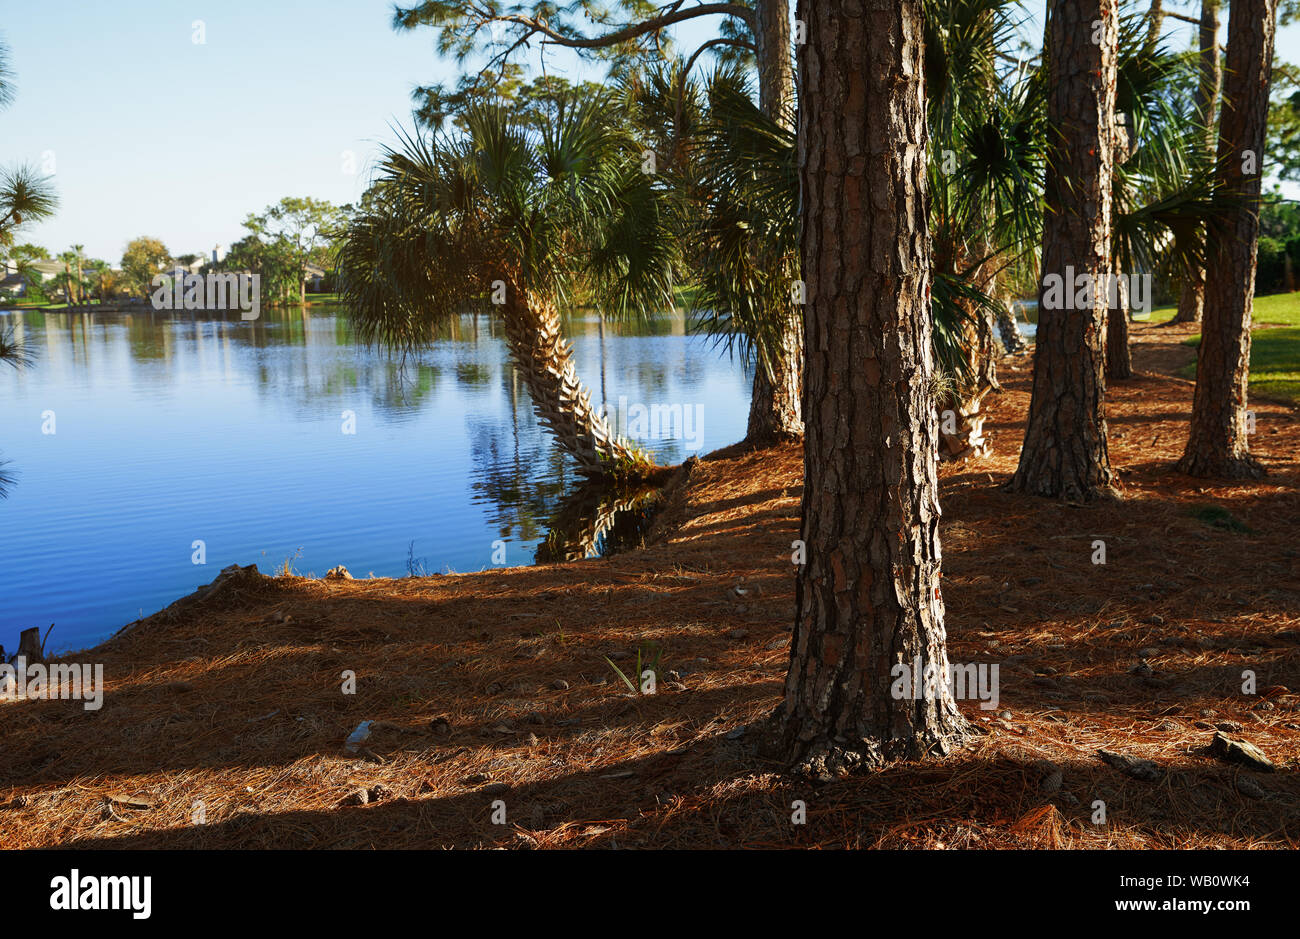 Palm trees growing next to the lake in Florida, USA Stock Photo